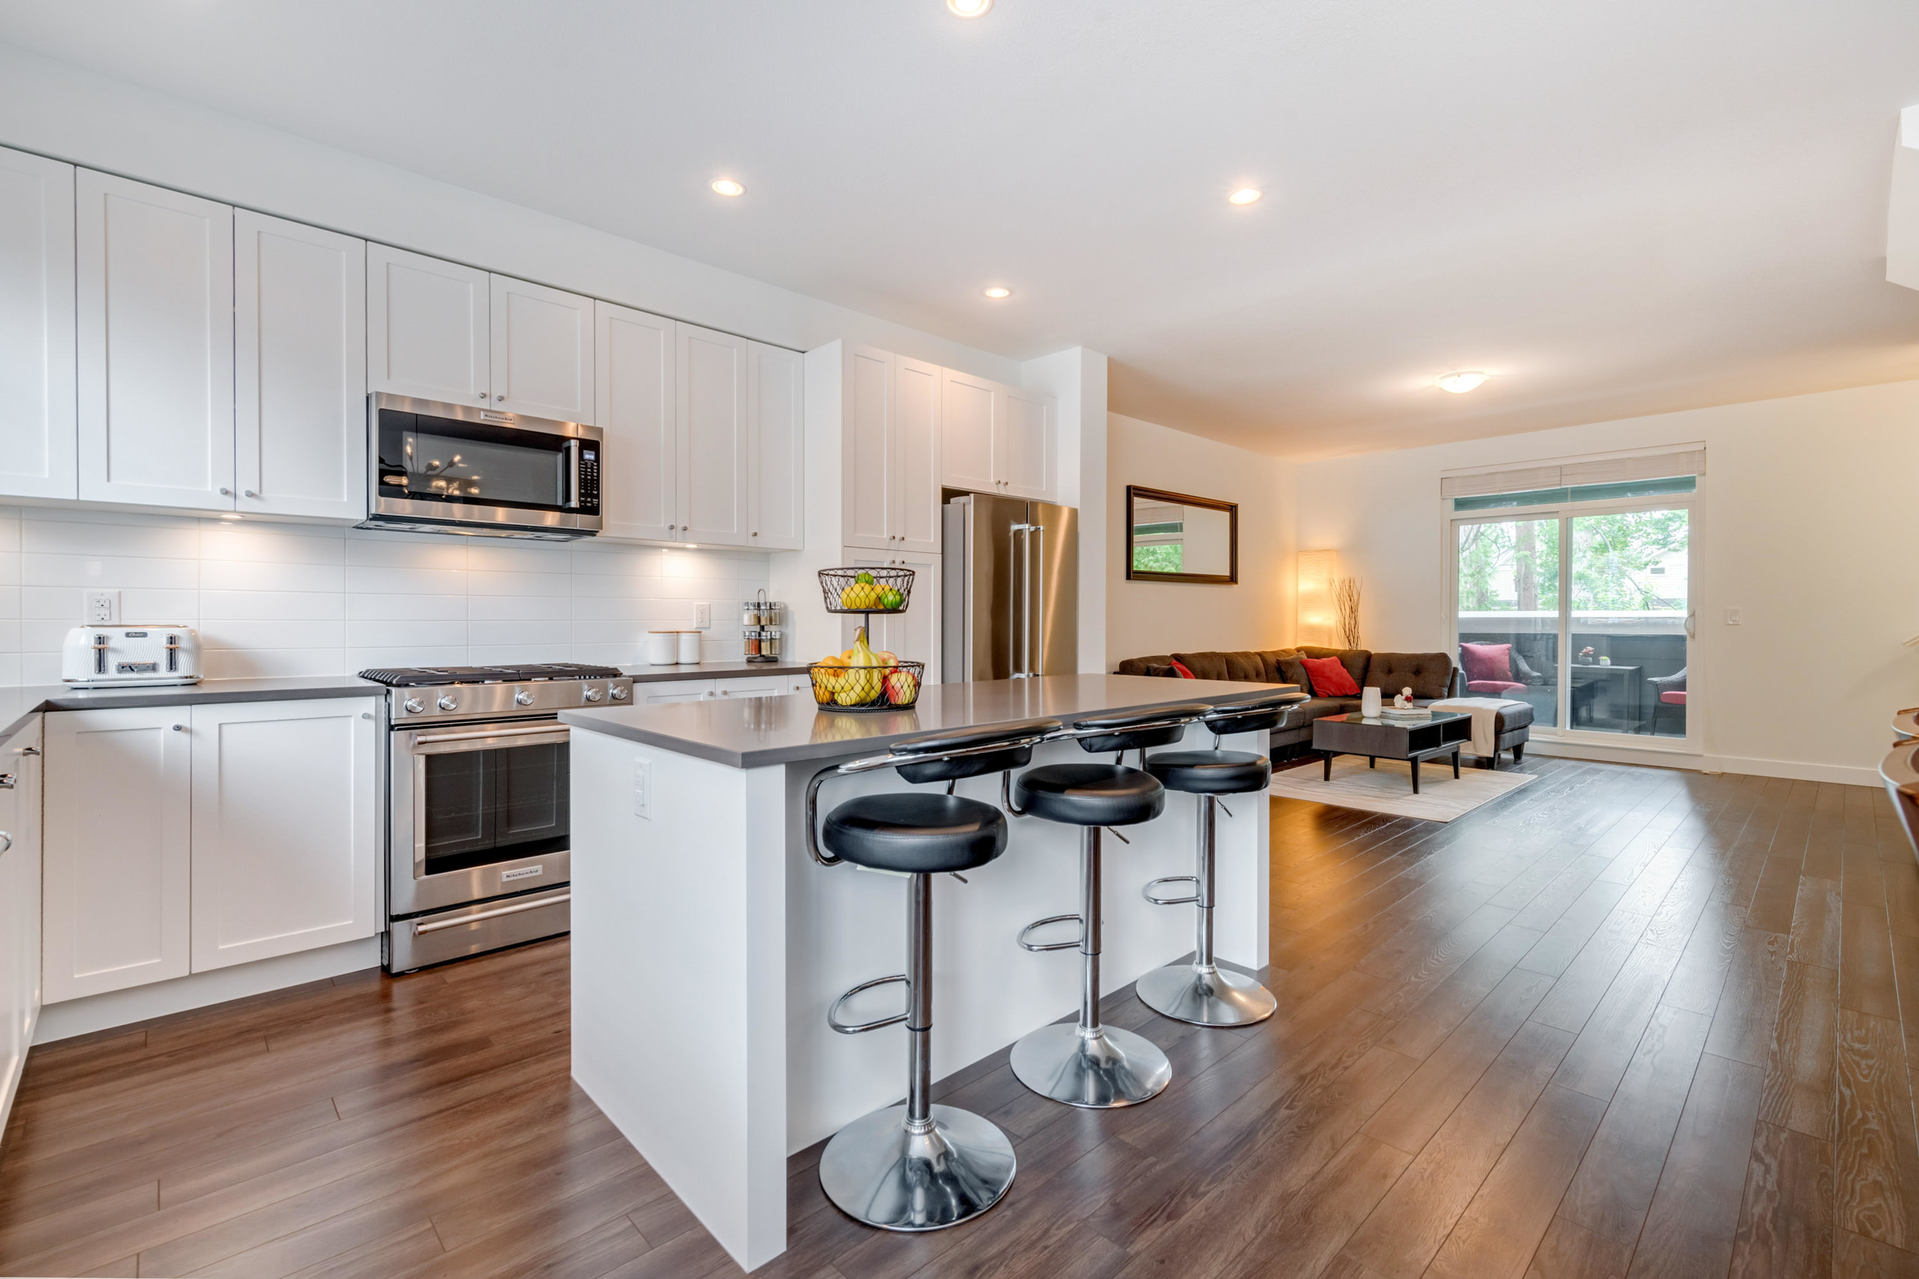 Kitchen & Living Room at 22 - 127 172 Street, Pacific Douglas, South Surrey White Rock